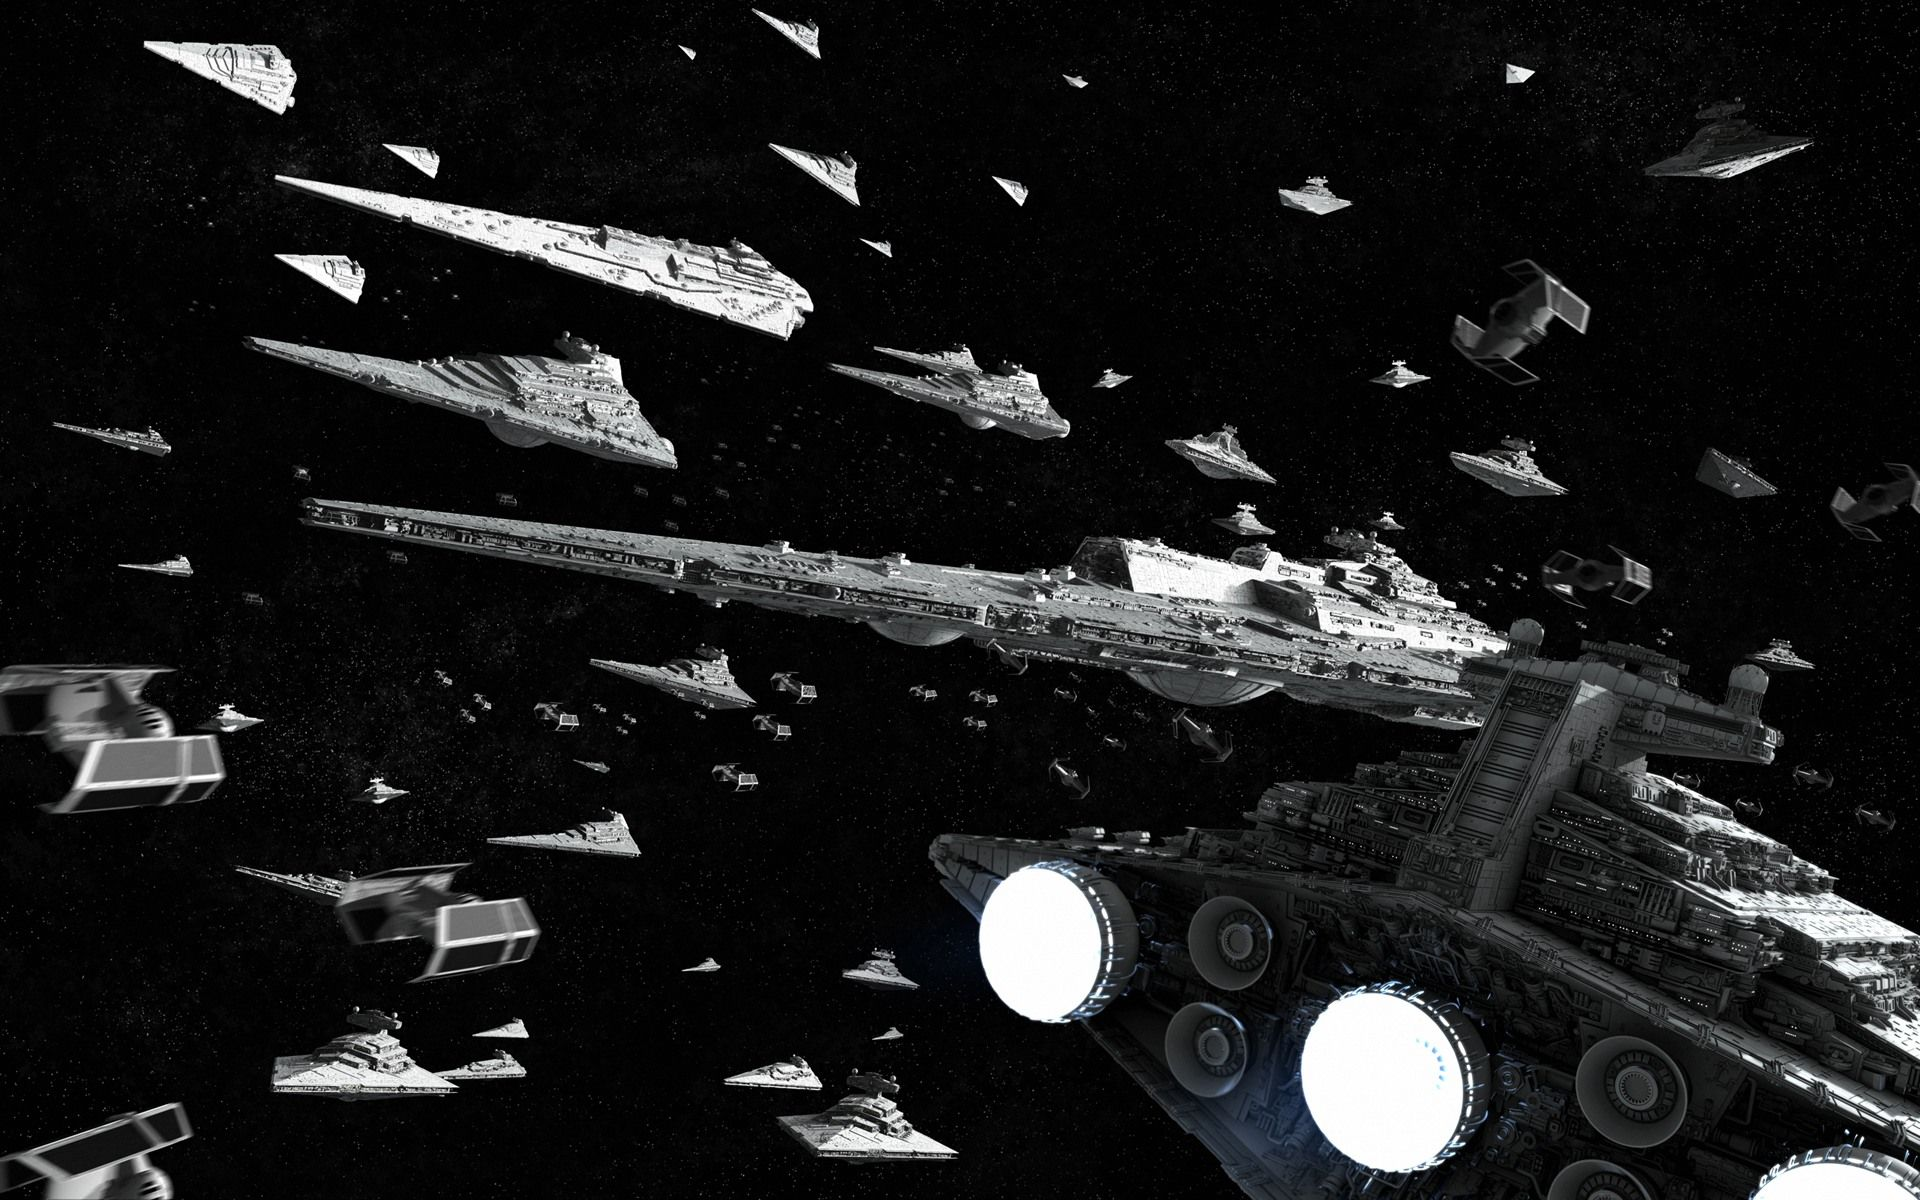 Mobile Star Wars High Resolution Pictures 4k Ultra Hd